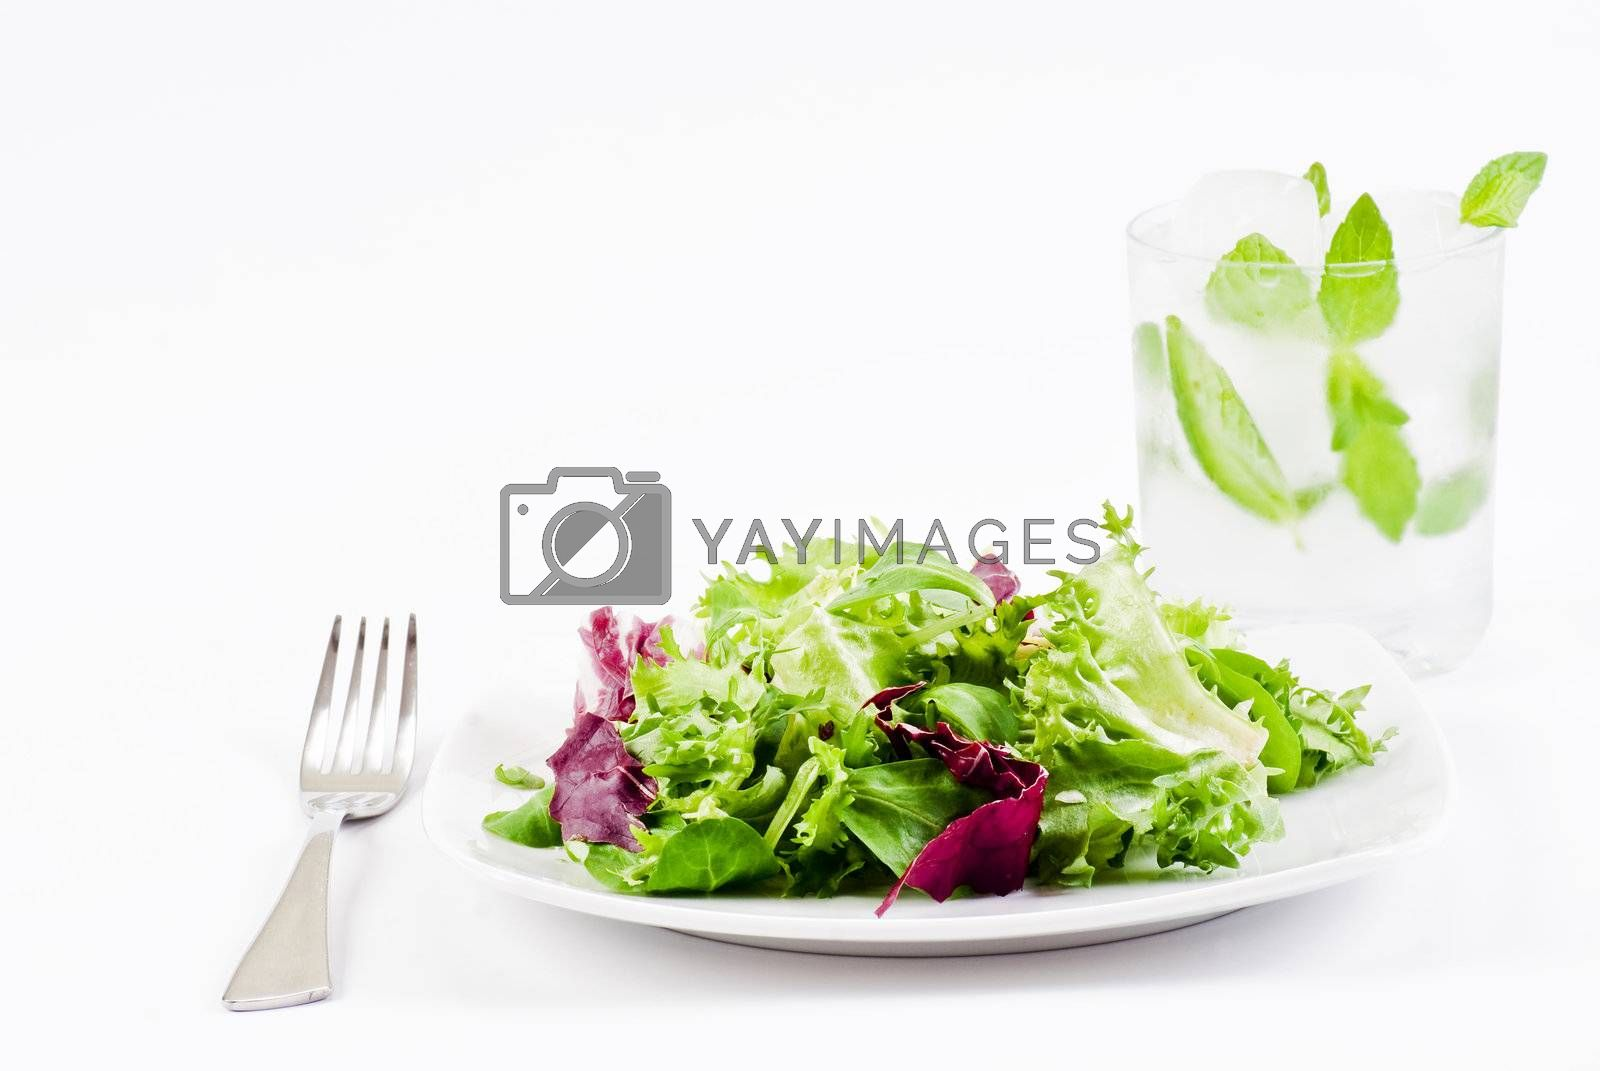 Crispy salad and ice cold drink by caldix